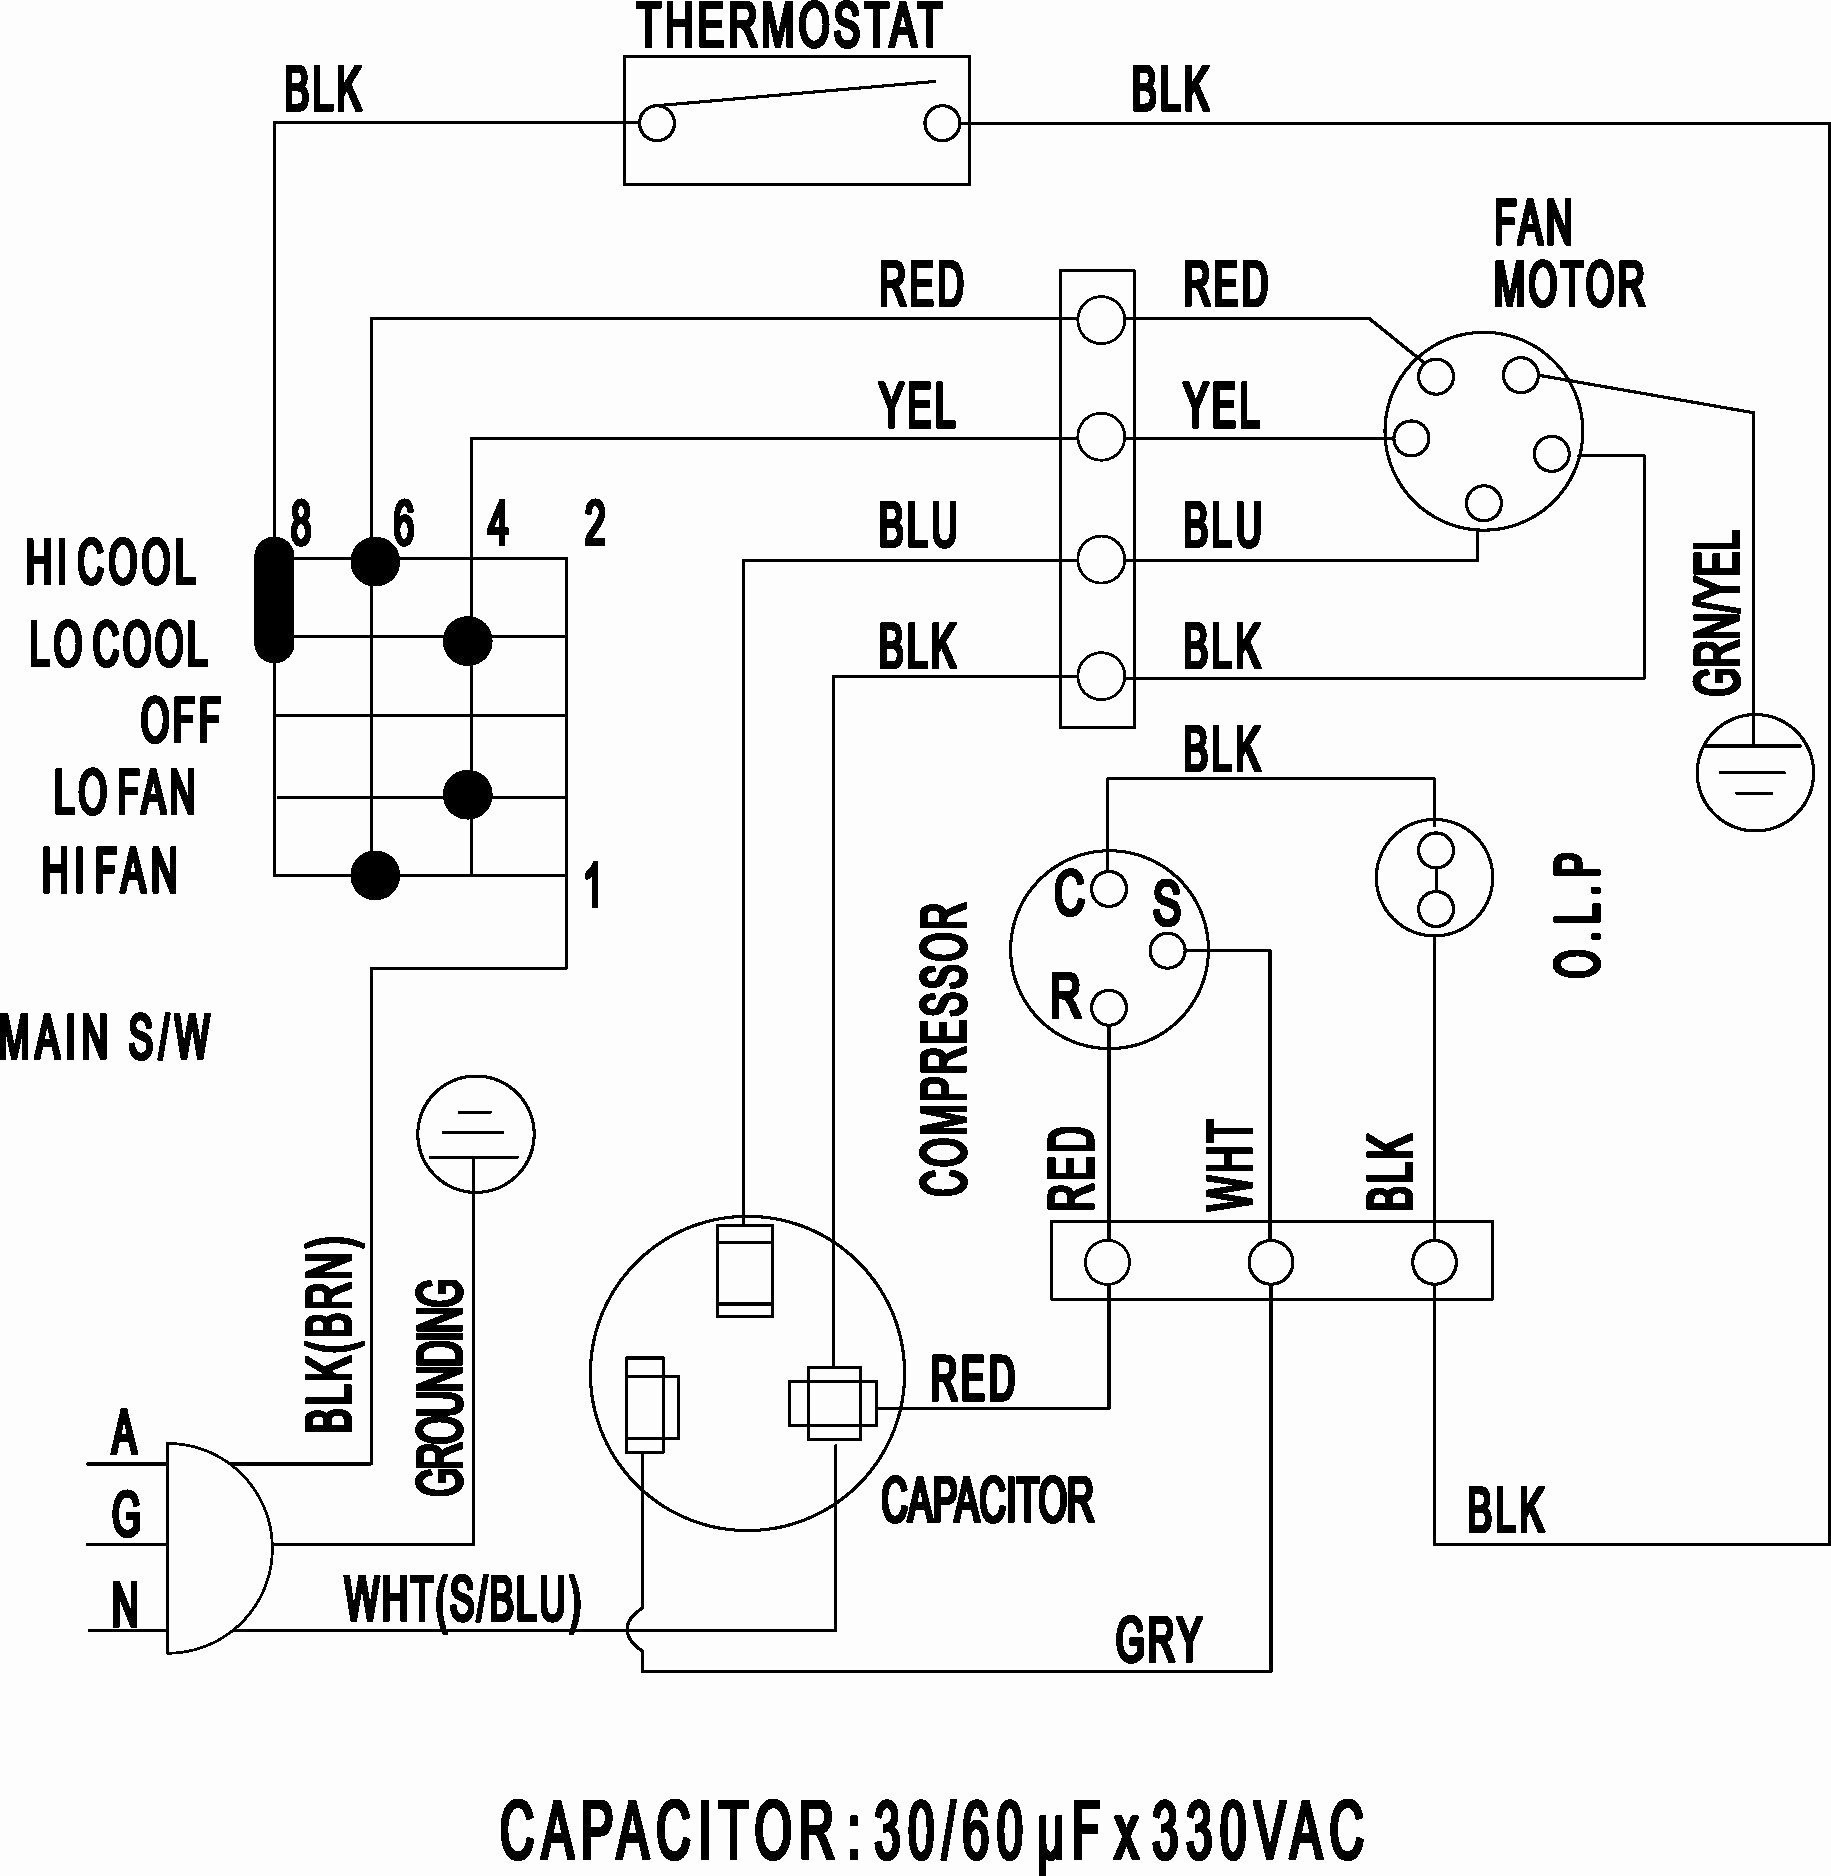 voltas split ac wiring diagram wiring diagram Air Handler Wiring Diagram